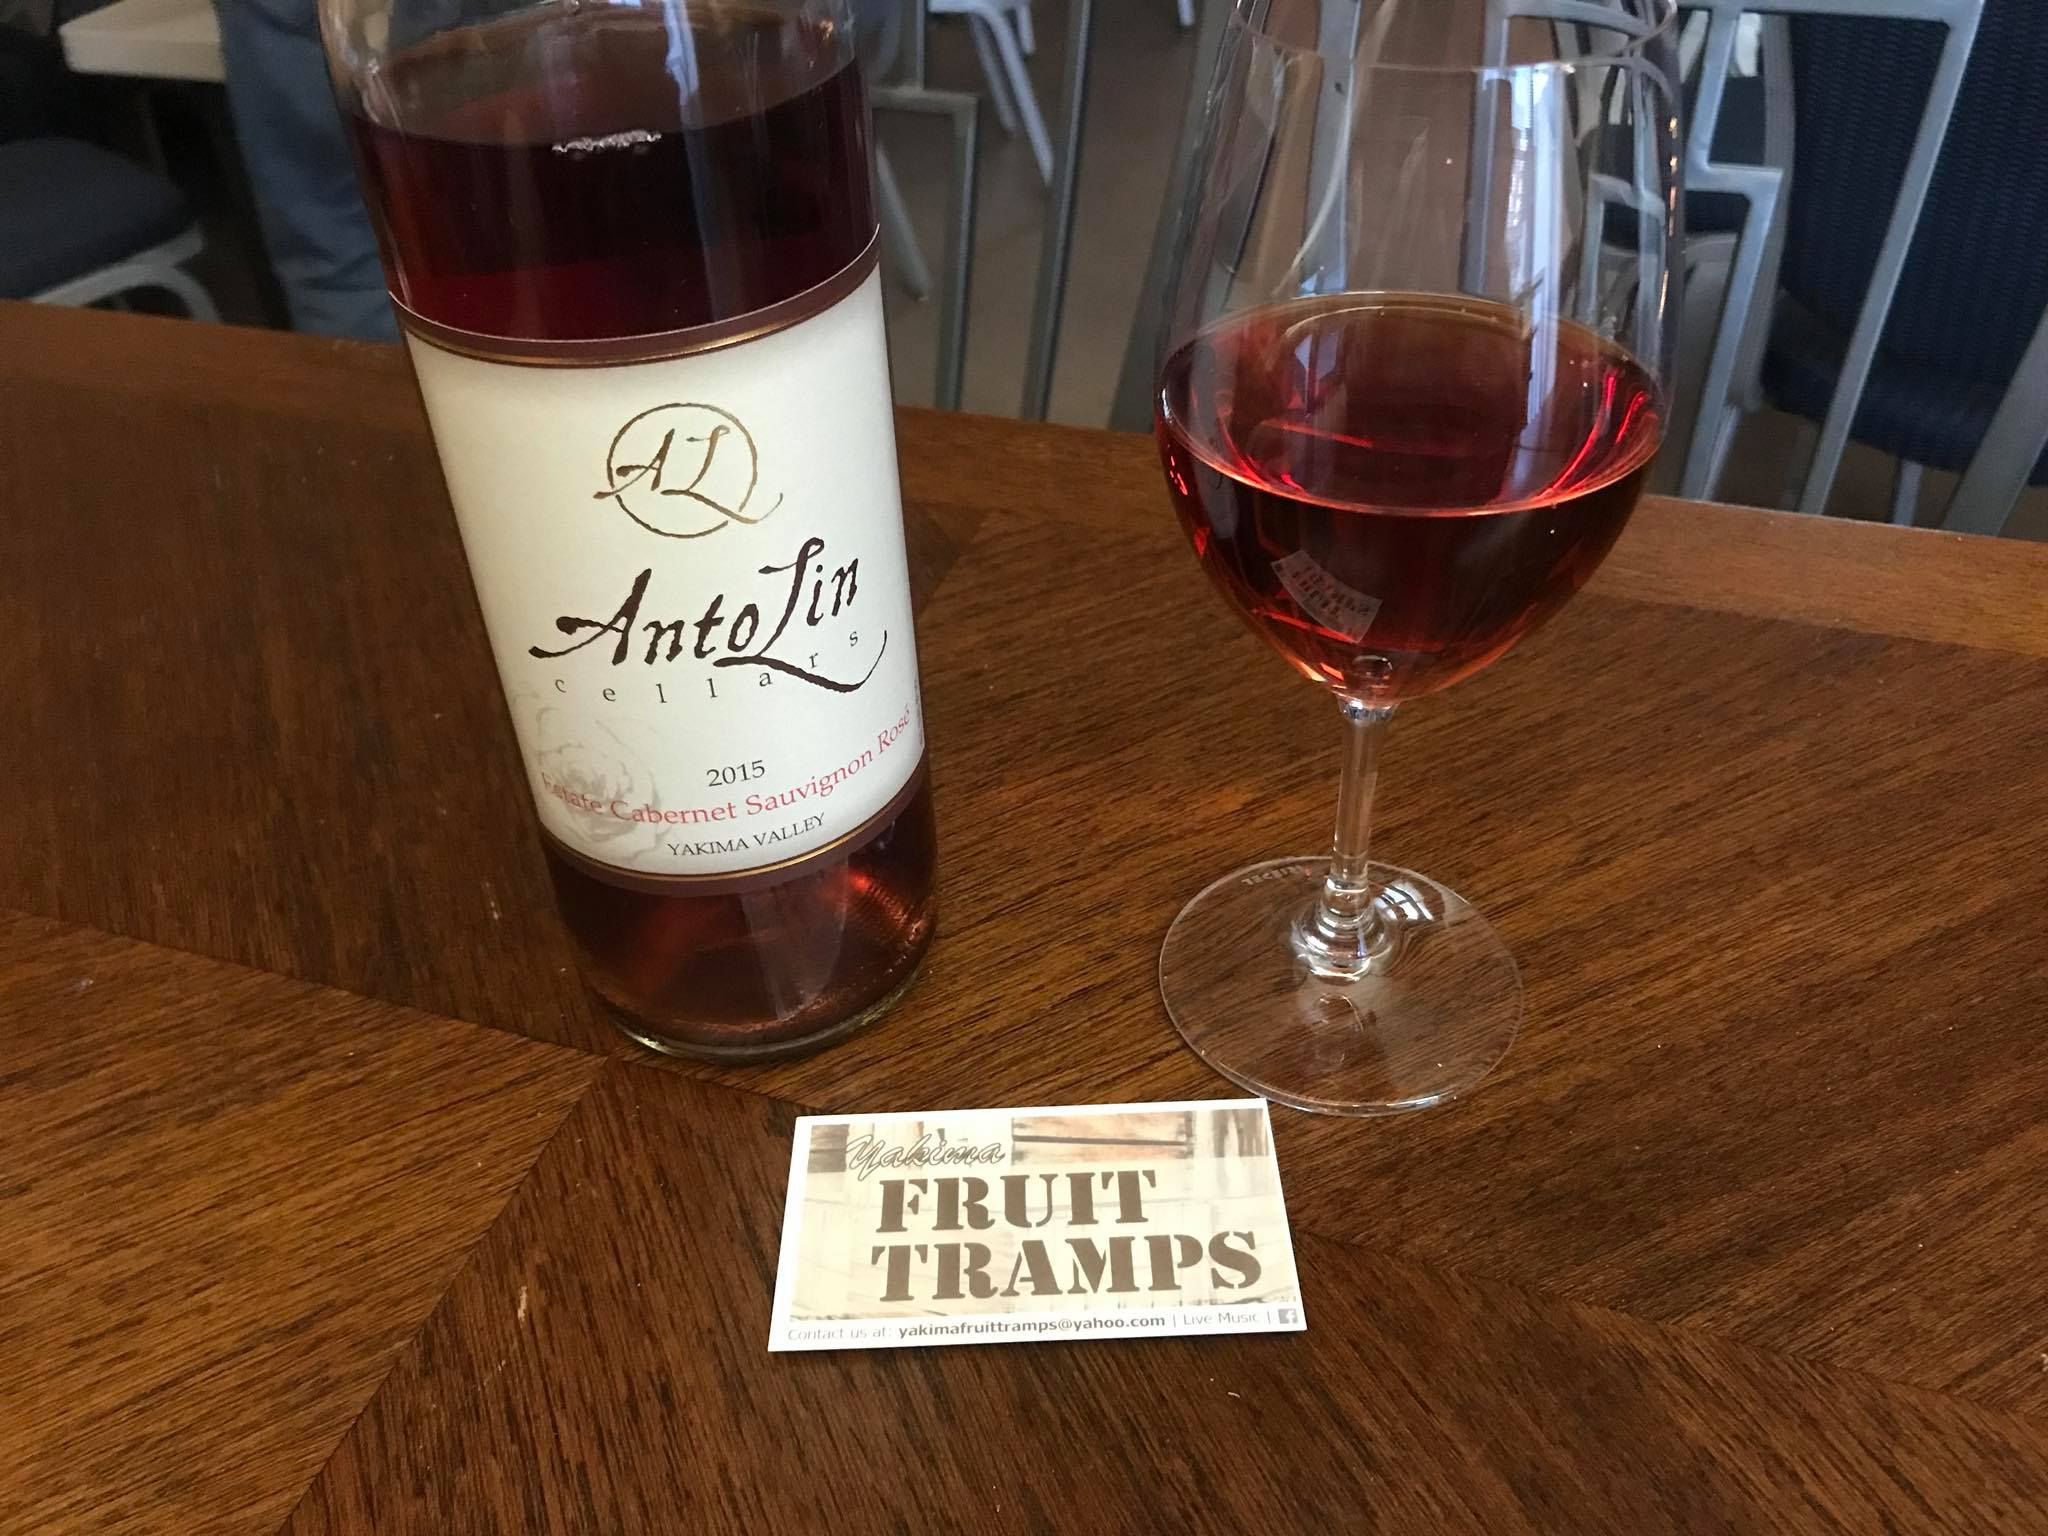 ALC CC Photo Fruit Tramps Rose 5676575675767644 - AntoLin Cellars presents the Fruit Tramps